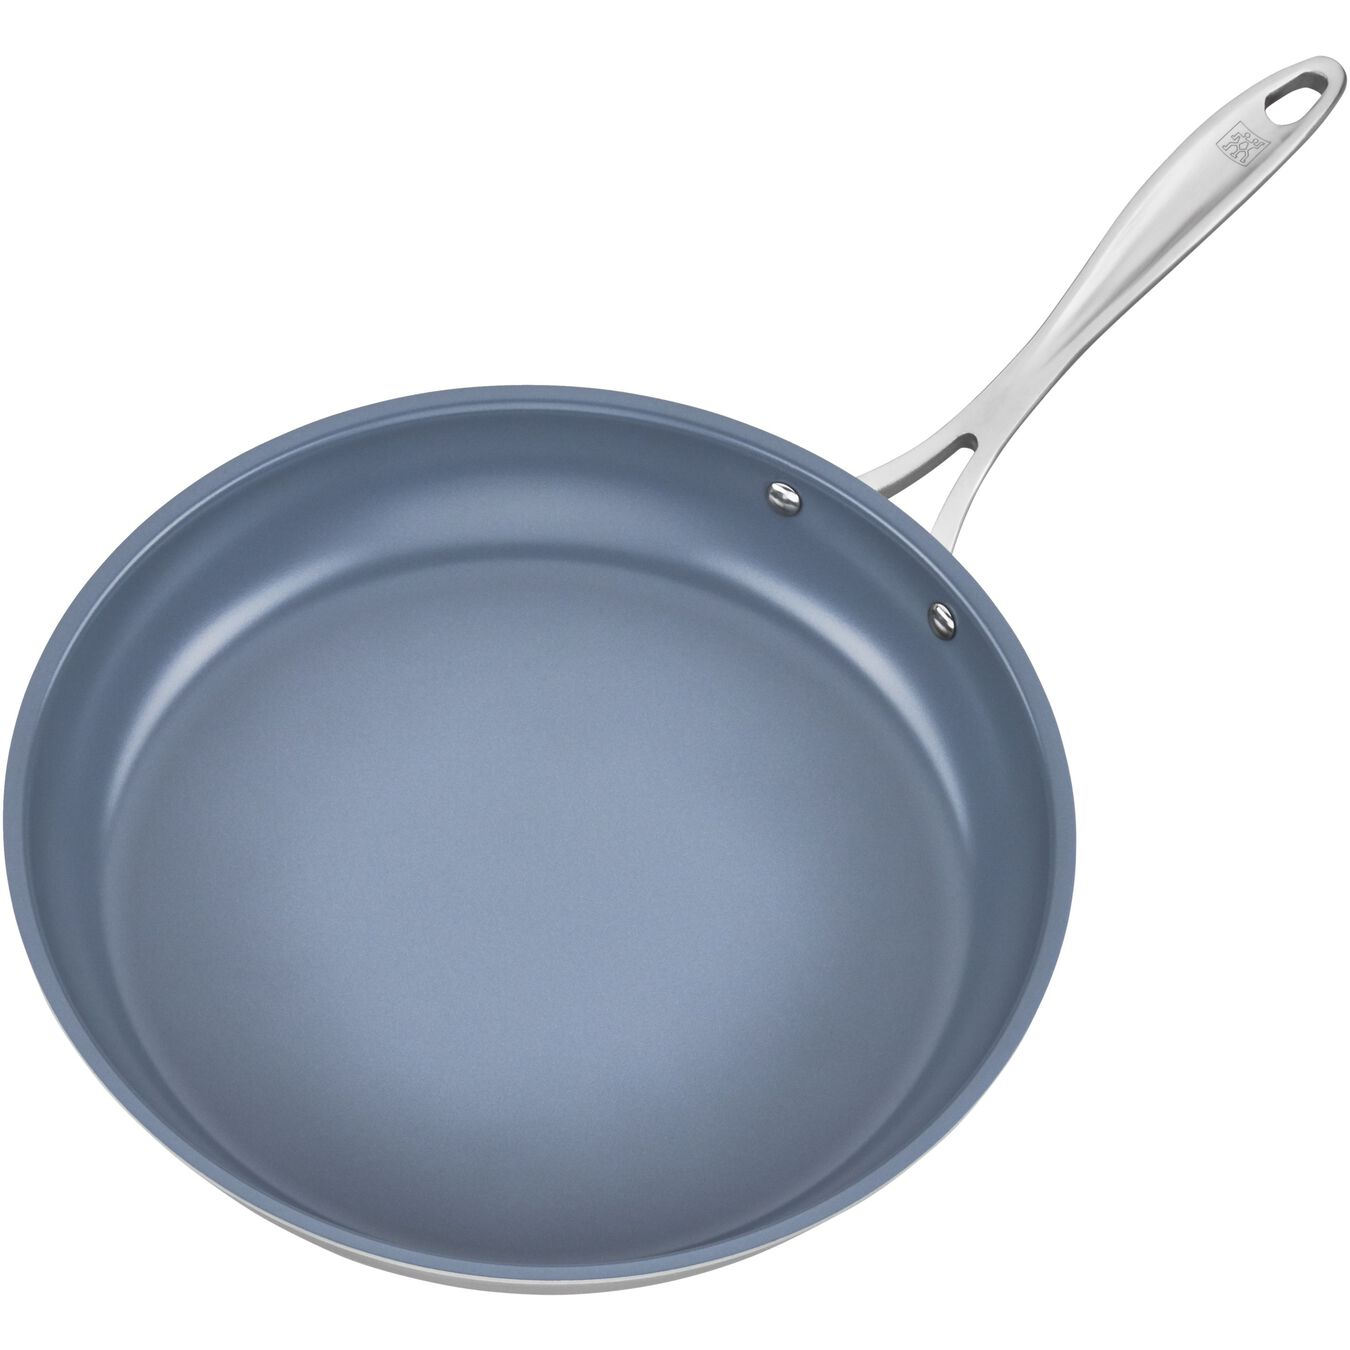 3 Ply, 12-inch, 18/10 Stainless Steel, Ceramic, Frying pan,,large 2